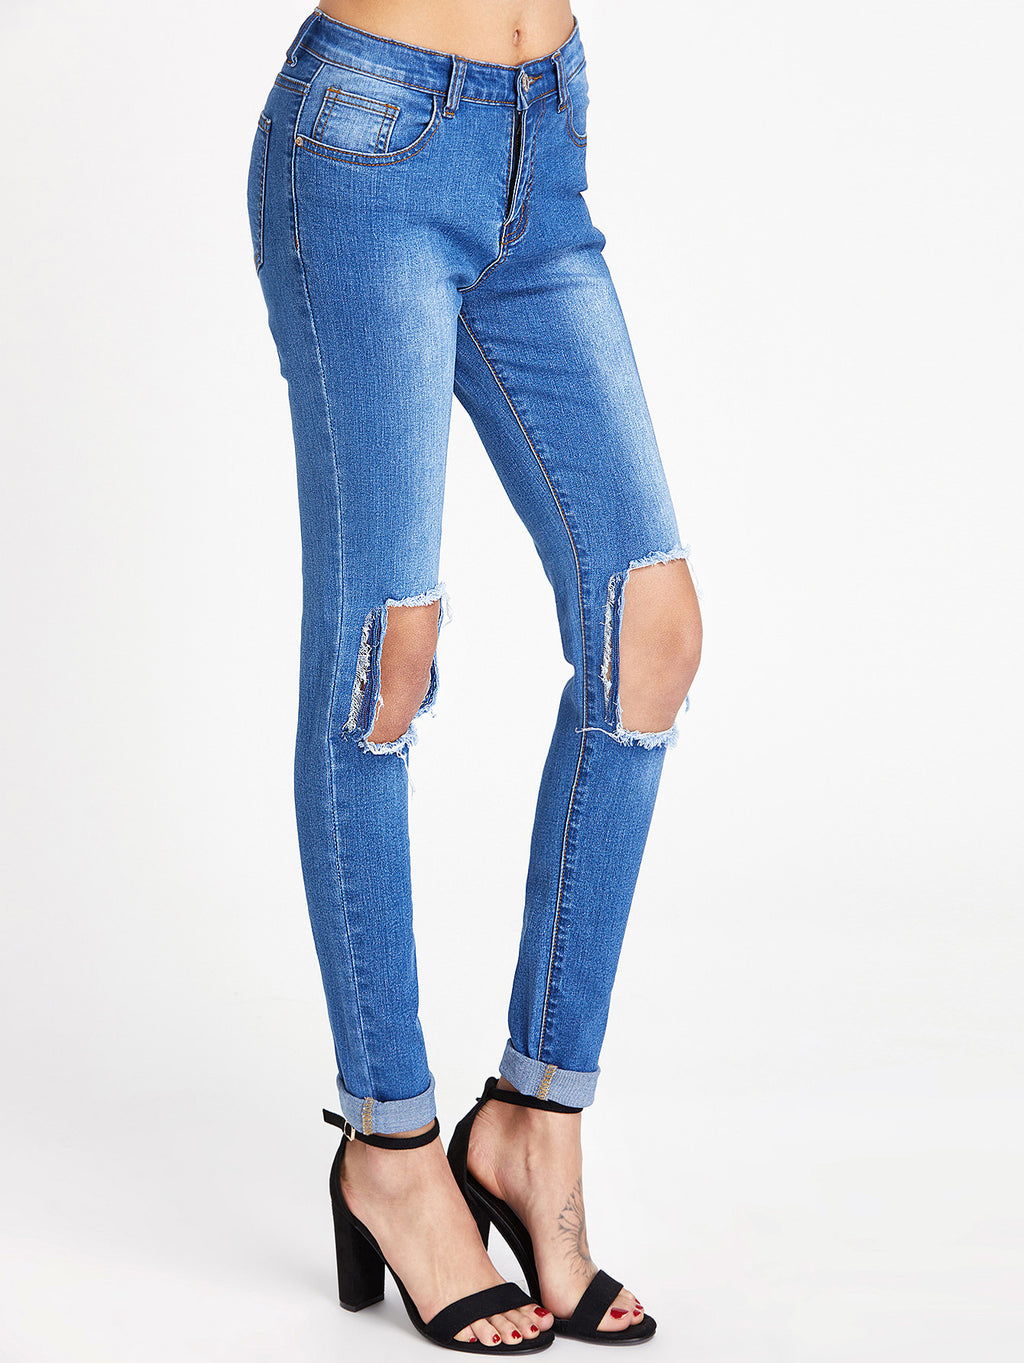 Want her blue denim ripped knee jeans